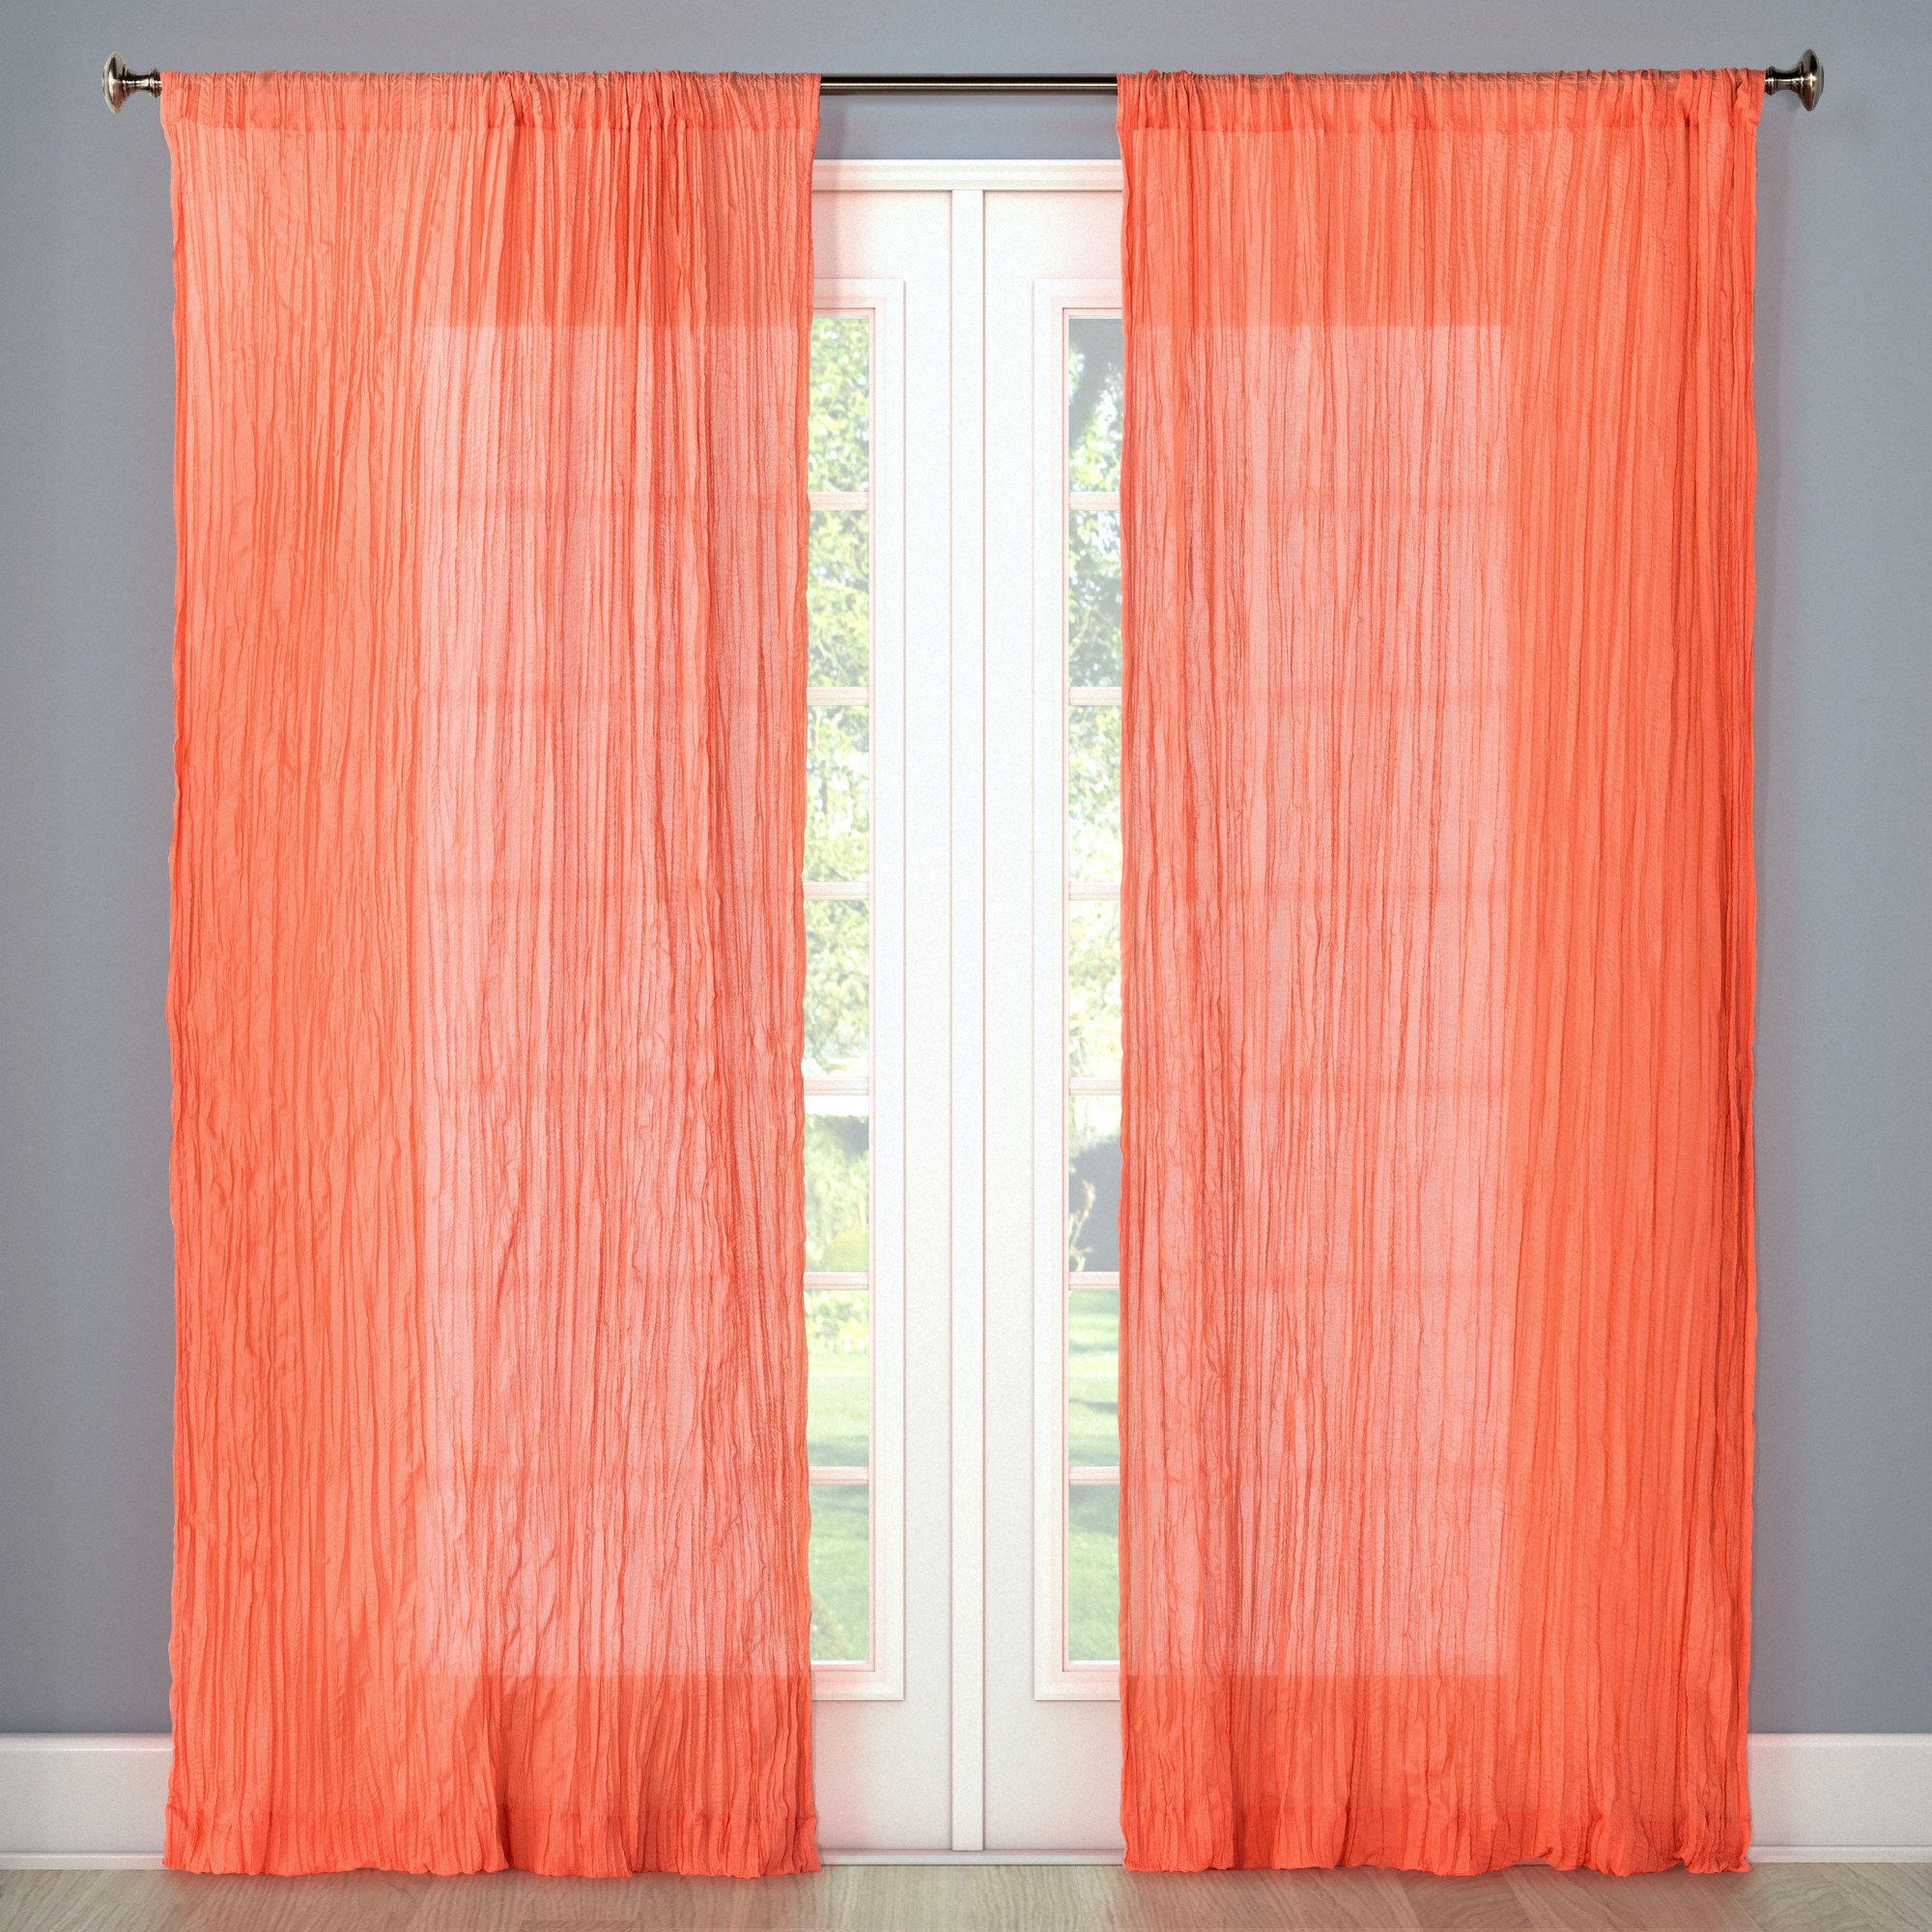 Crushed sheer voile curtain panel coral pink